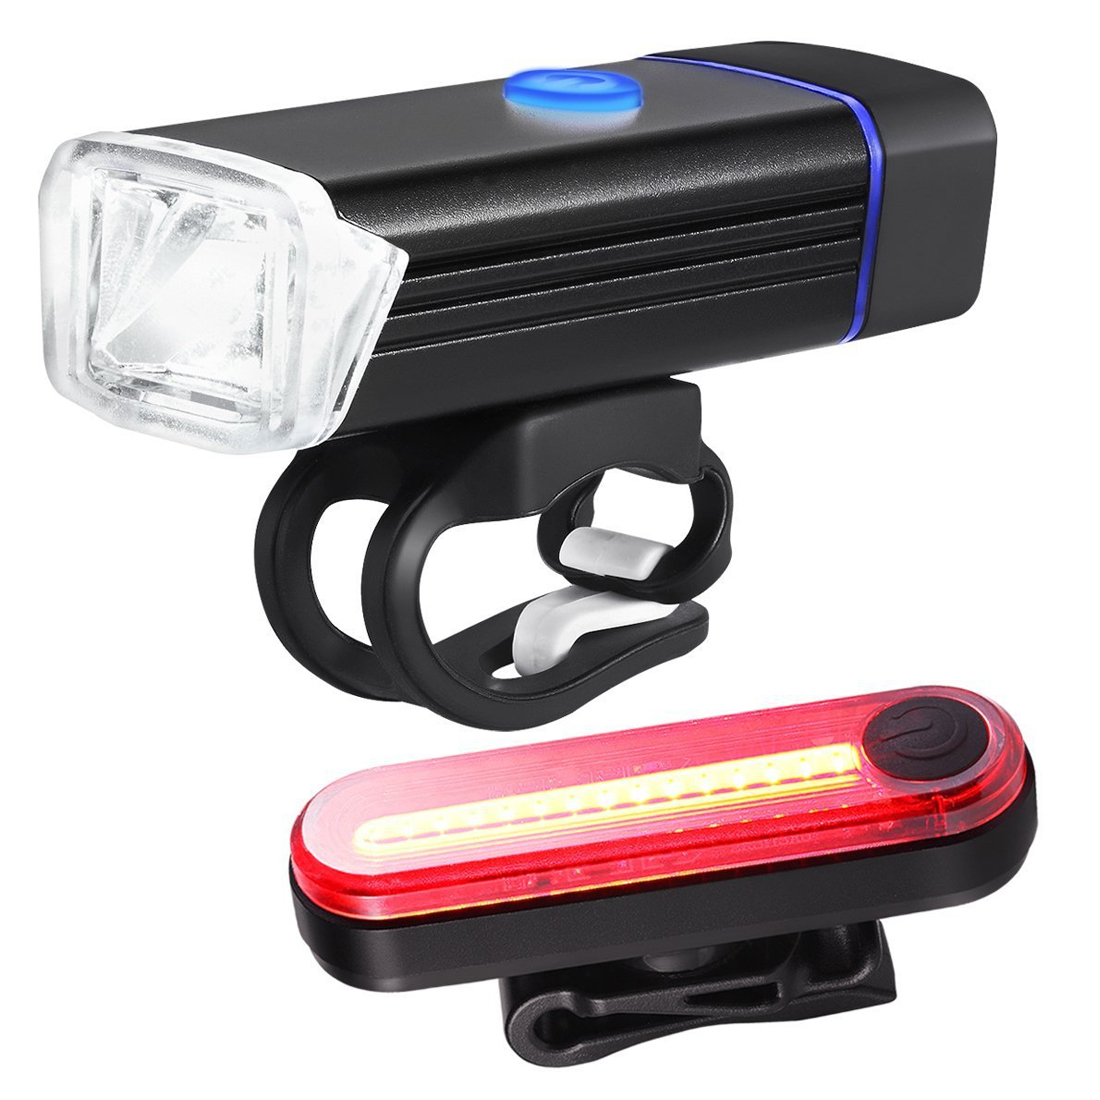 NEW Bicycle Lamp New Arrival Bike Torch USB Chargeable Led Front Light Tail Light Set Taillight Rear Light